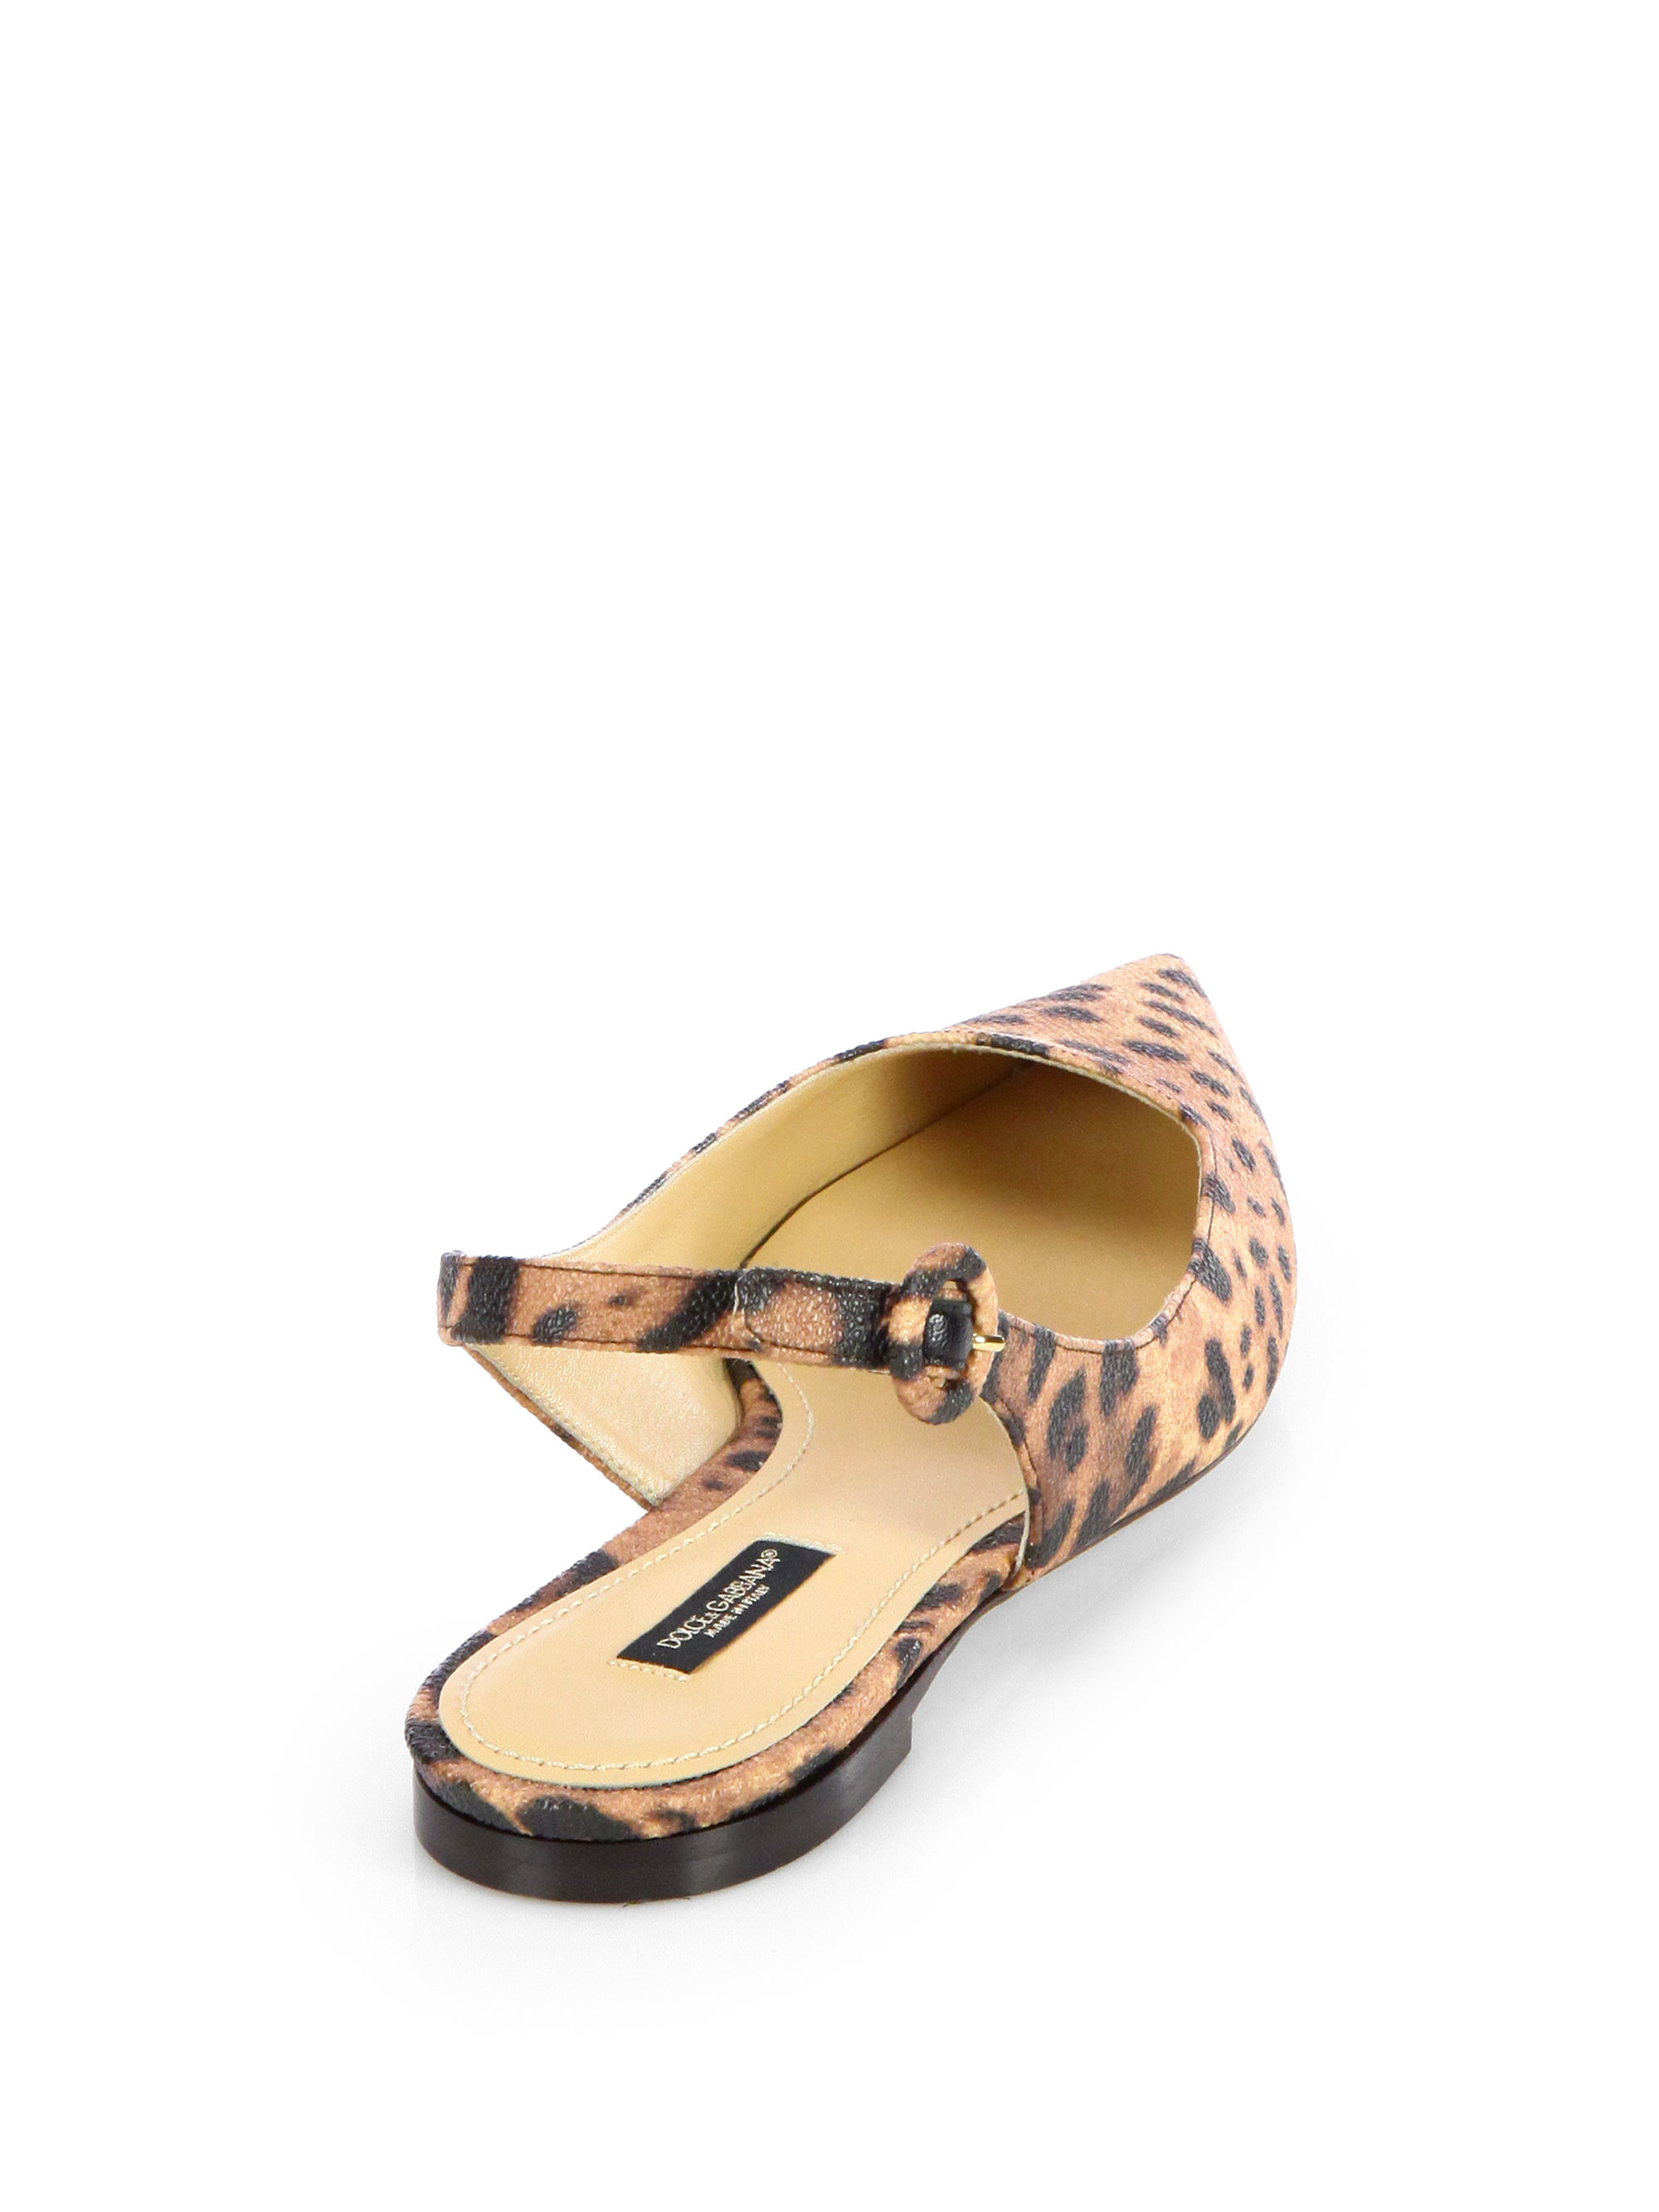 cheap price cost clearance factory outlet Dolce & Gabbana Leopard Slingback Flats discount enjoy order online co7xkI